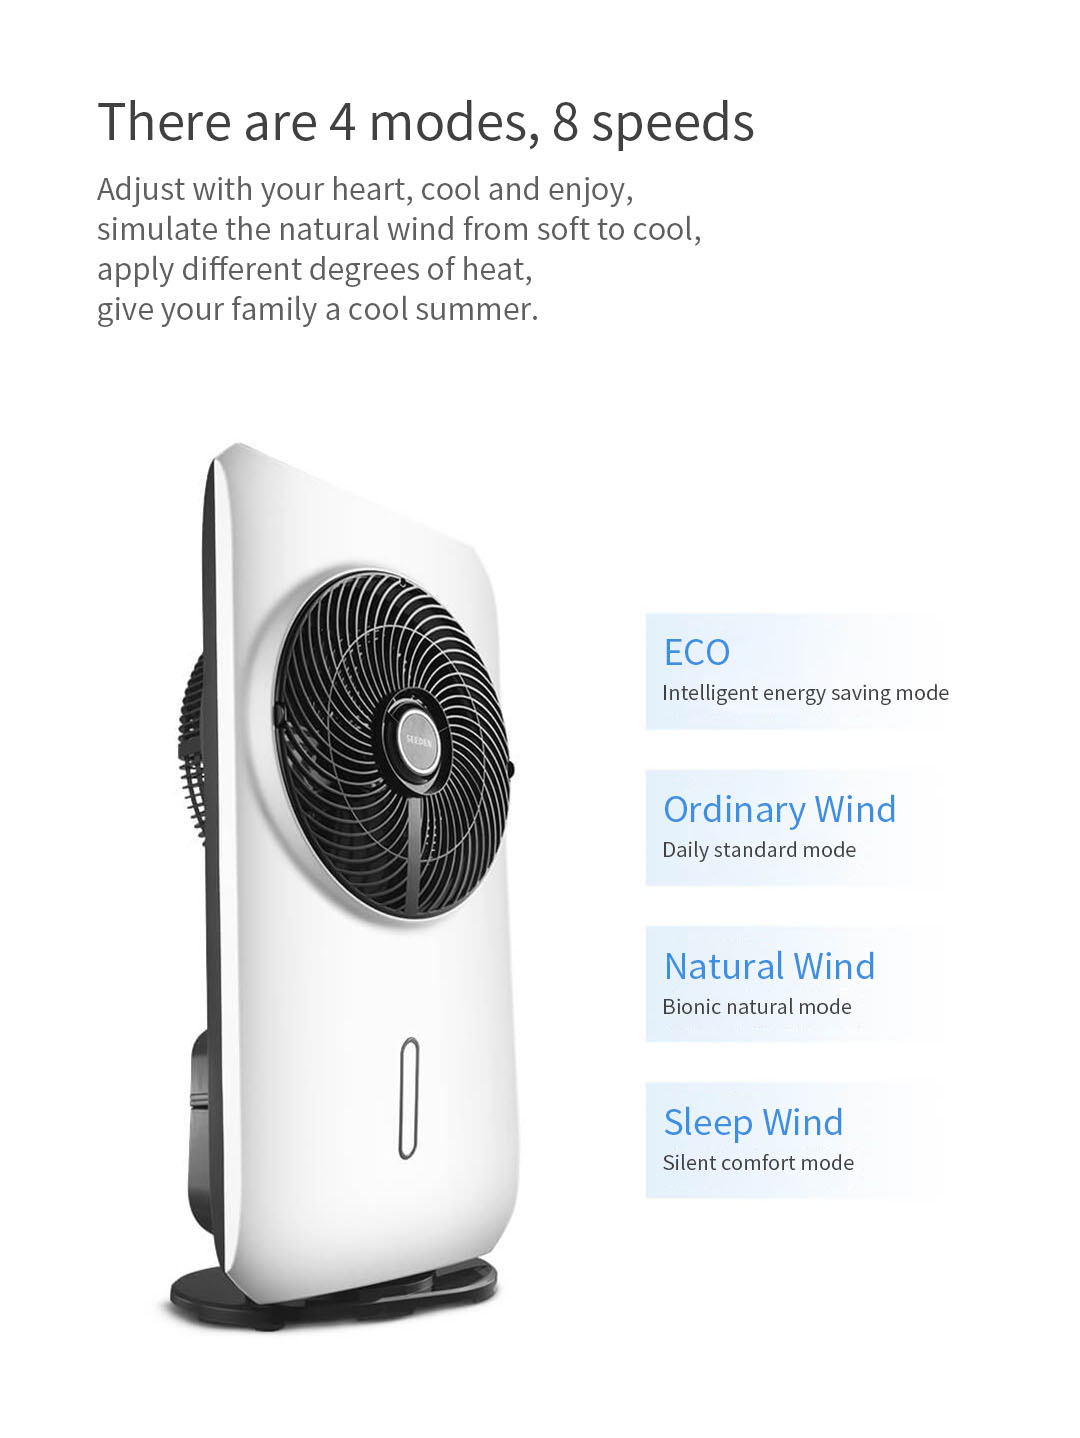 Seeden Fog Cooling Fan Intelligent Atomization System Natural Wind Air Circulation Fan from Xiaomi Youpin